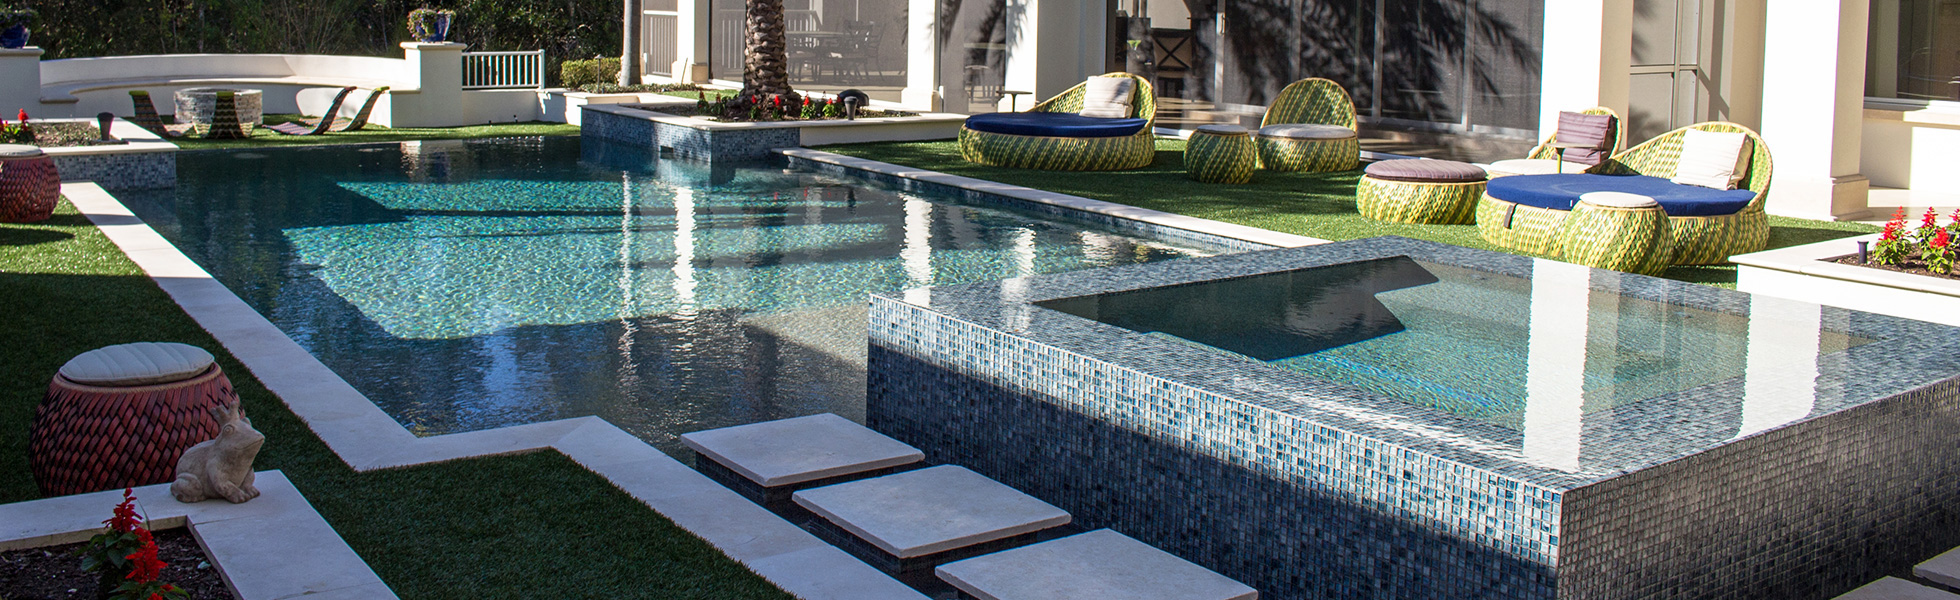 Luxury pool builder in orlando fl custom swimming pools for Pool design orlando florida